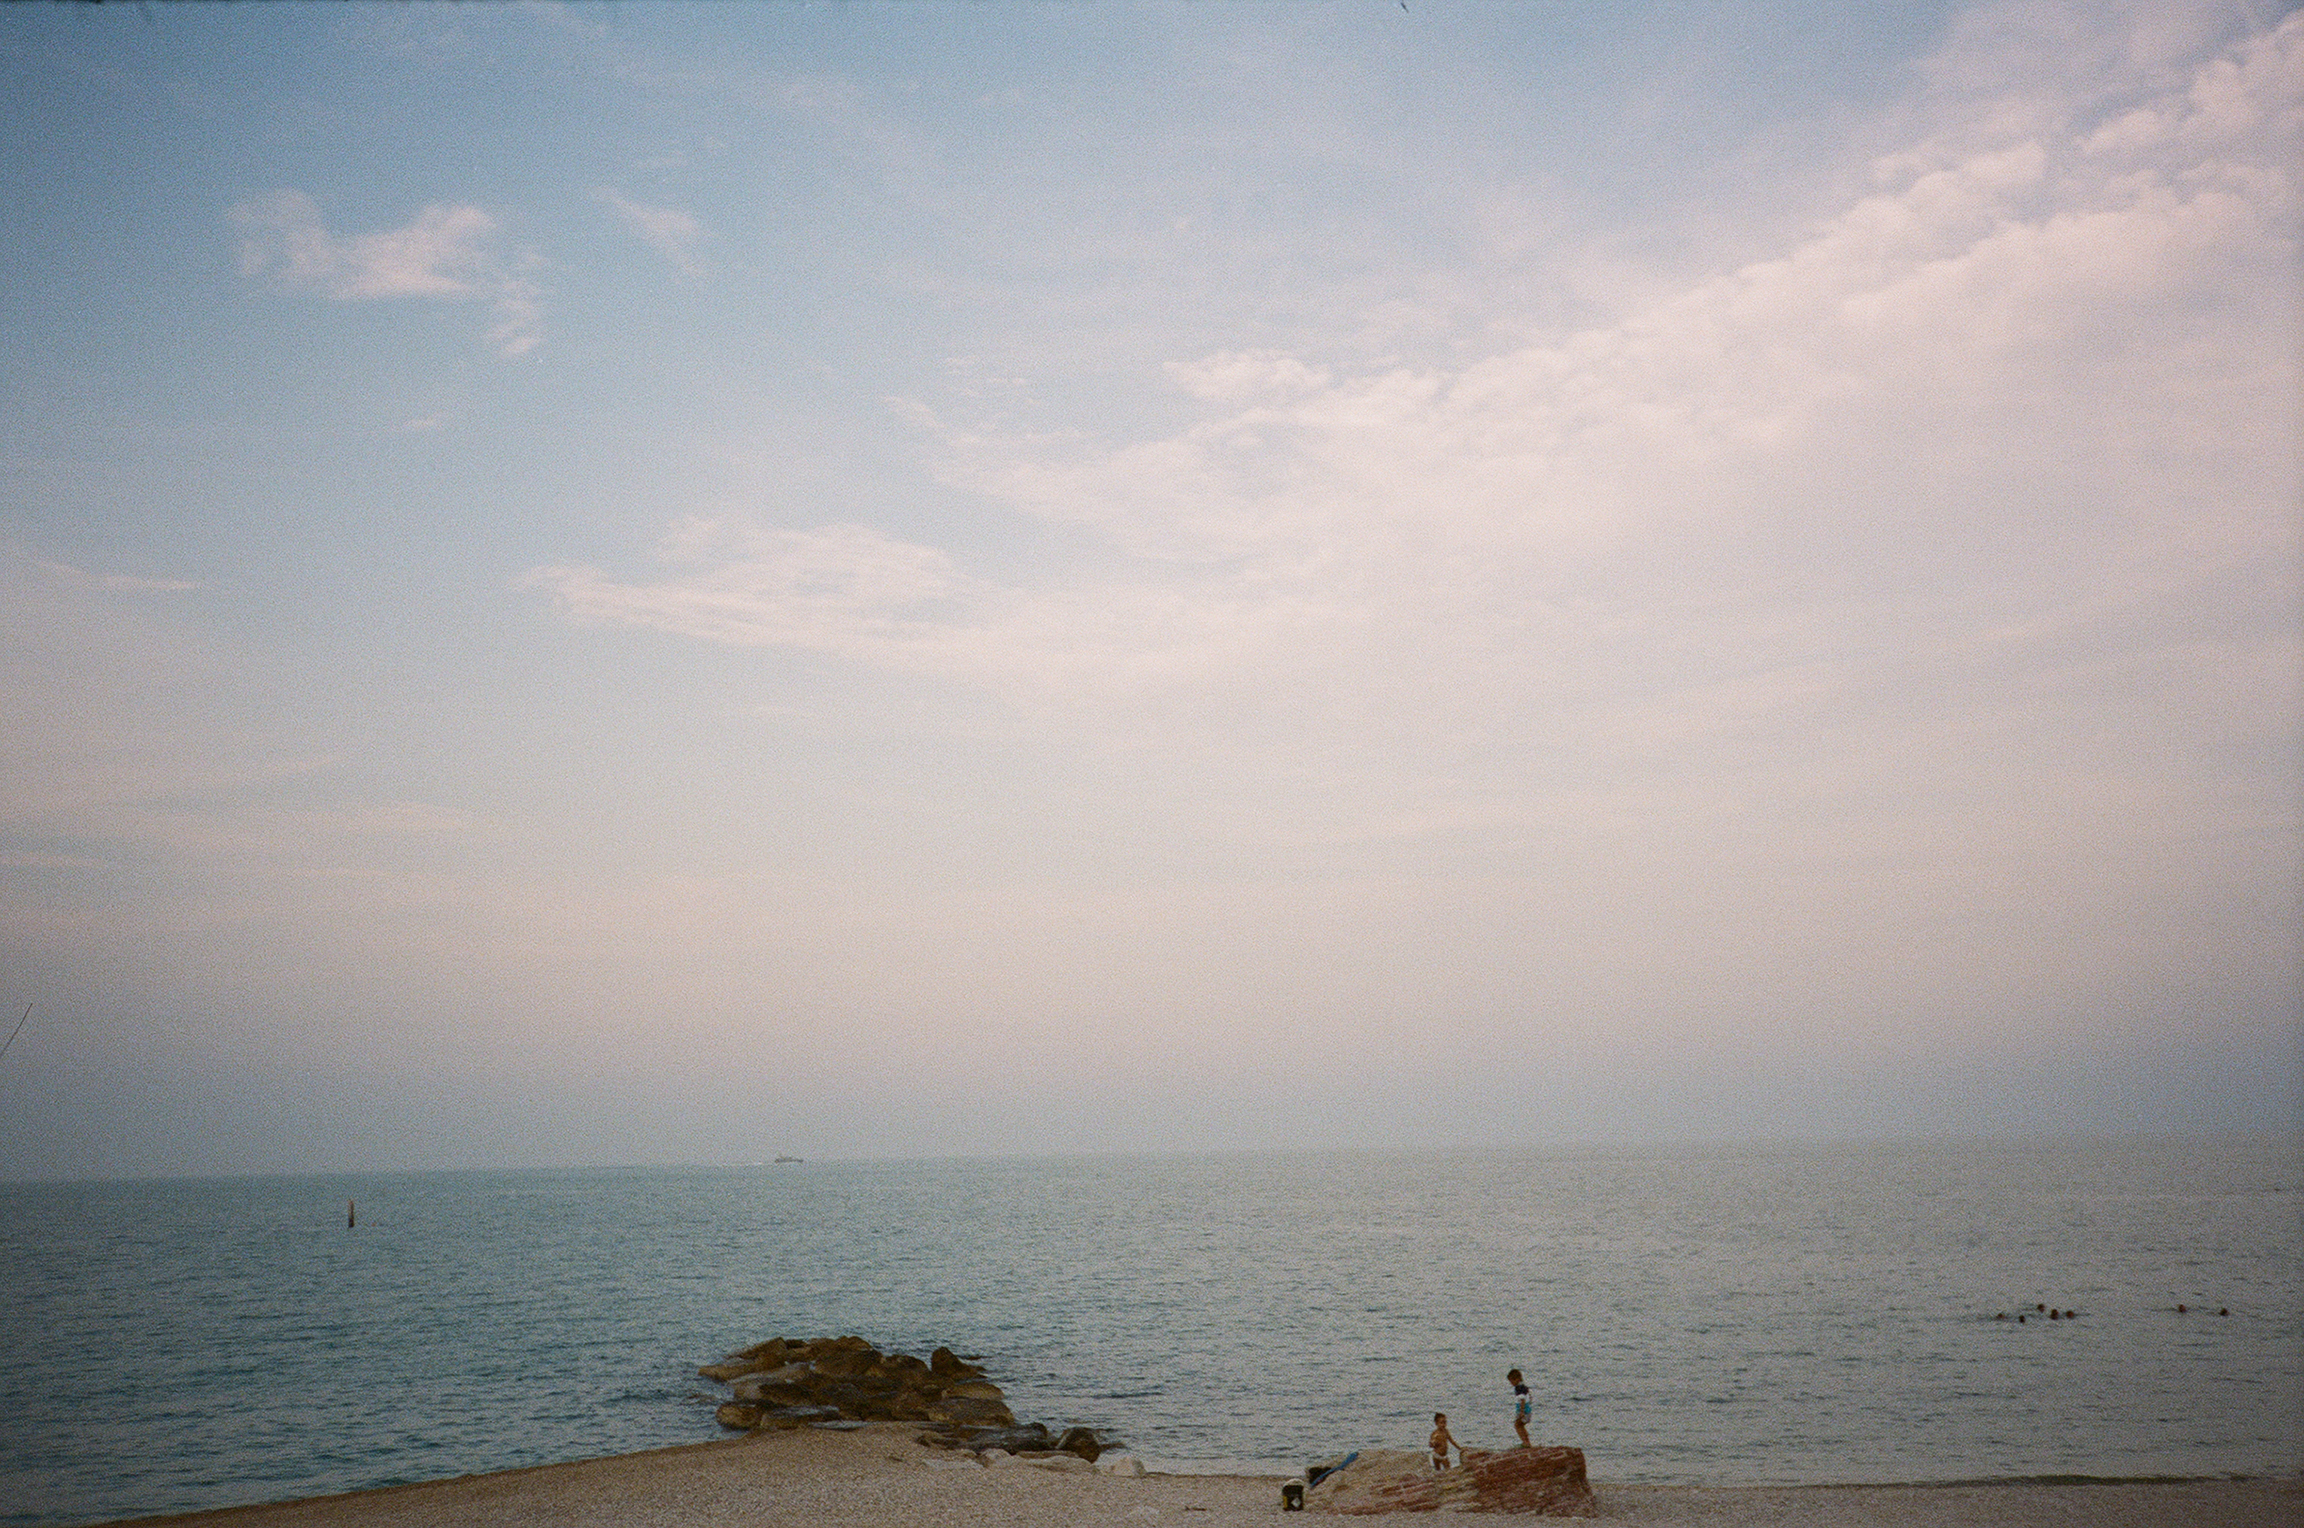 Landscape film photograph of a body of water, three kids on shore, some swimming